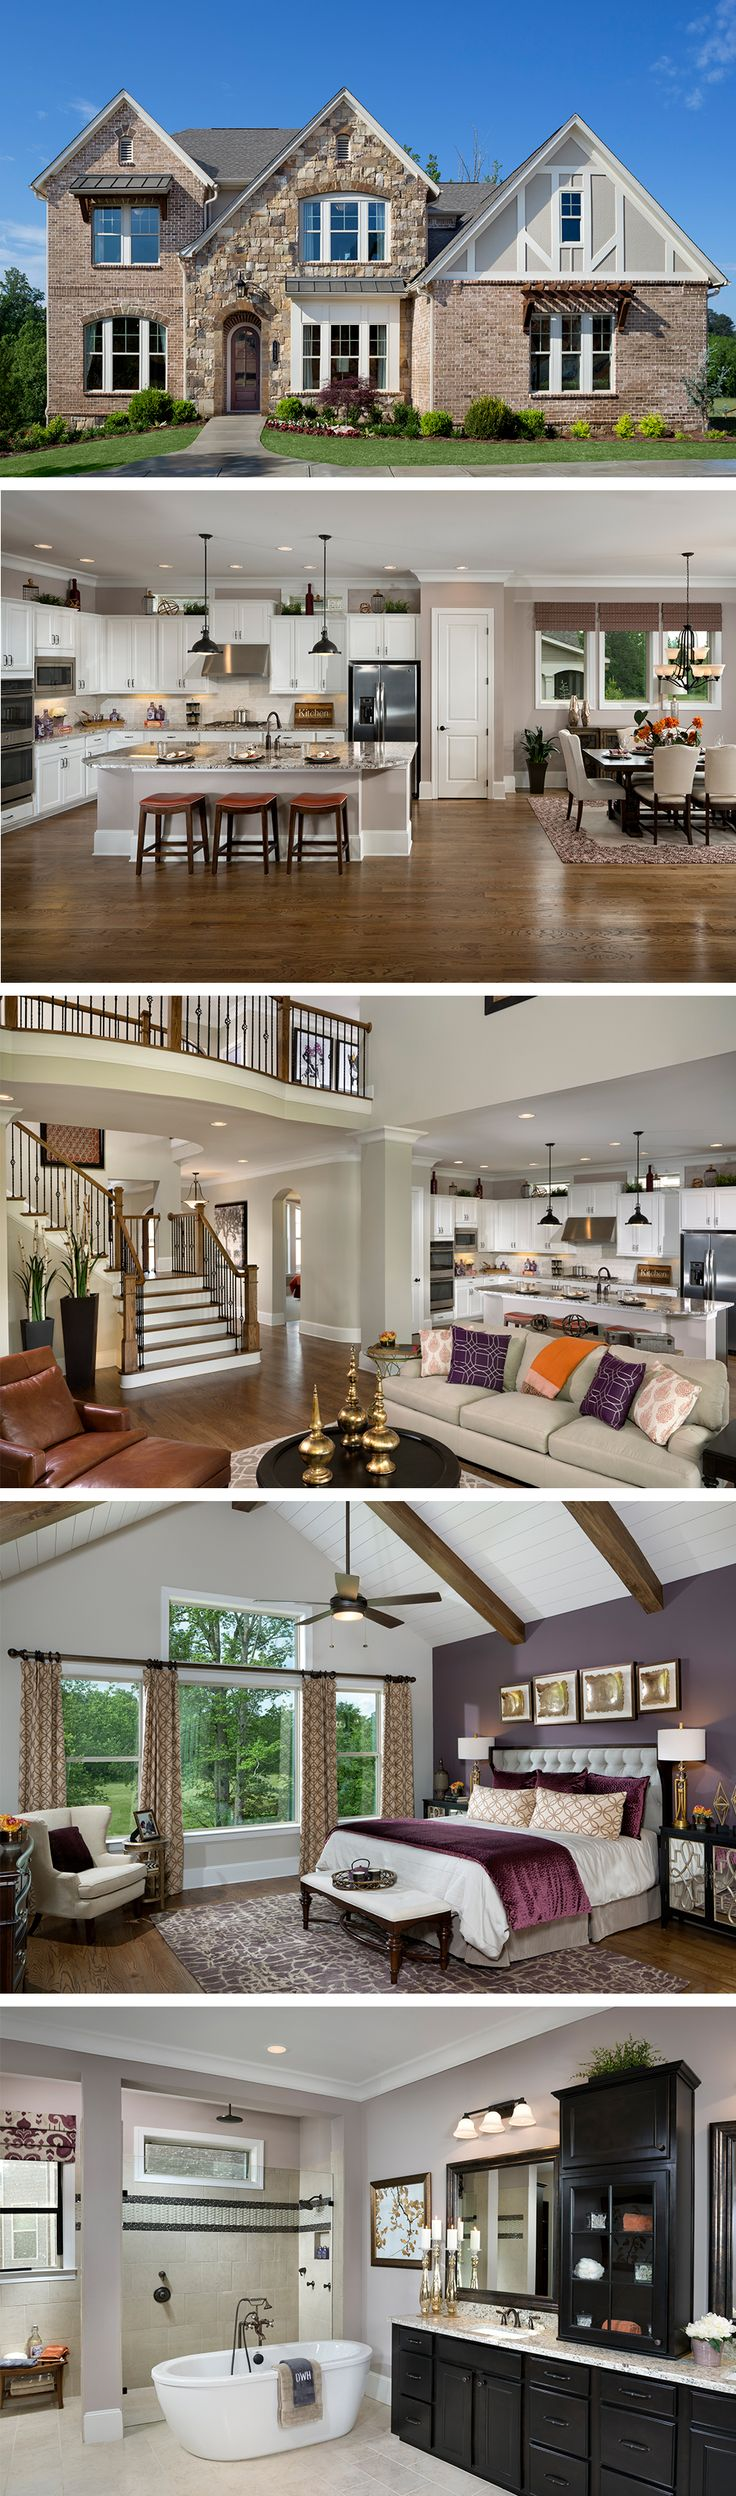 The Richwood by David Weekley Homes in The Reserve at Old Atlanta features high ceilings with rustic beams, an open kitchen space and ample parking space in a 2 1/2 car garage. This layout has serval stunning plan options like a covered porch, an extended owners retreat and an indoor fireplace.